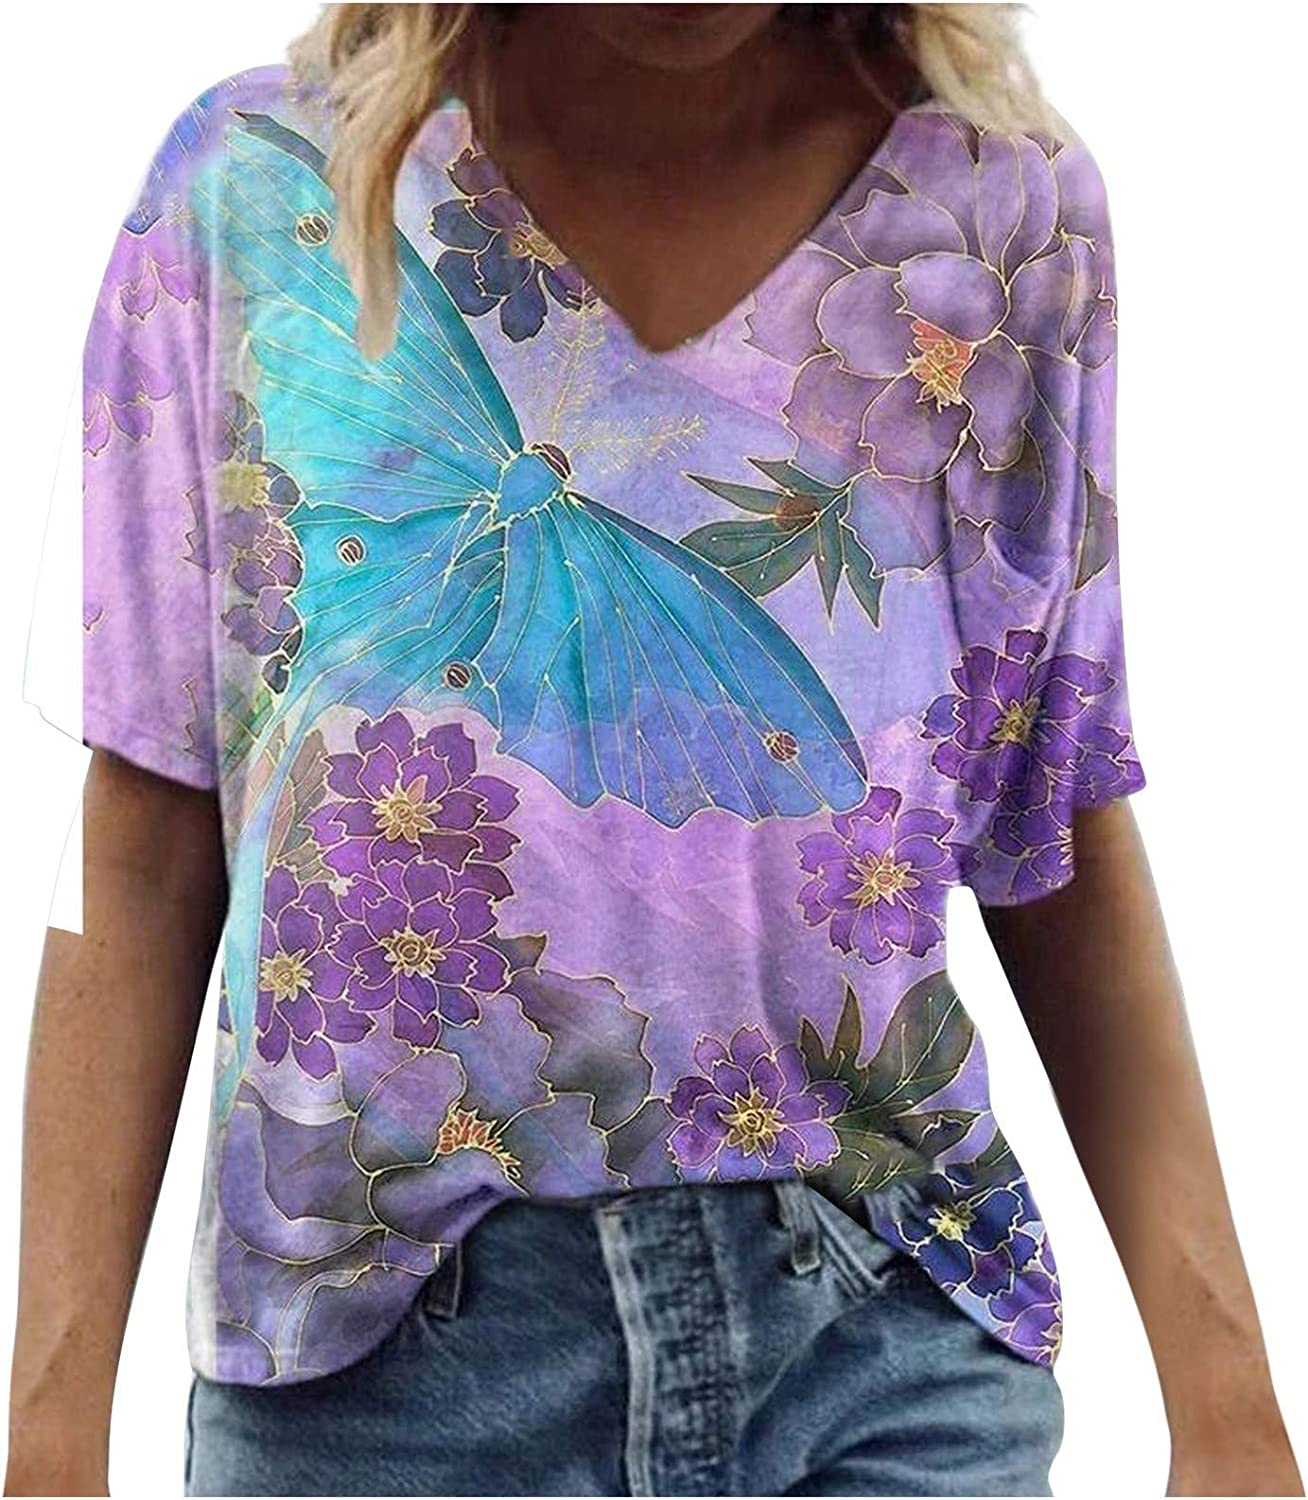 AODONG Summer Tops for Women Trendy Short Sleeve Tye Die Tees Casual V Neck T-Shirts with Zipper Tunic Pullover Tops